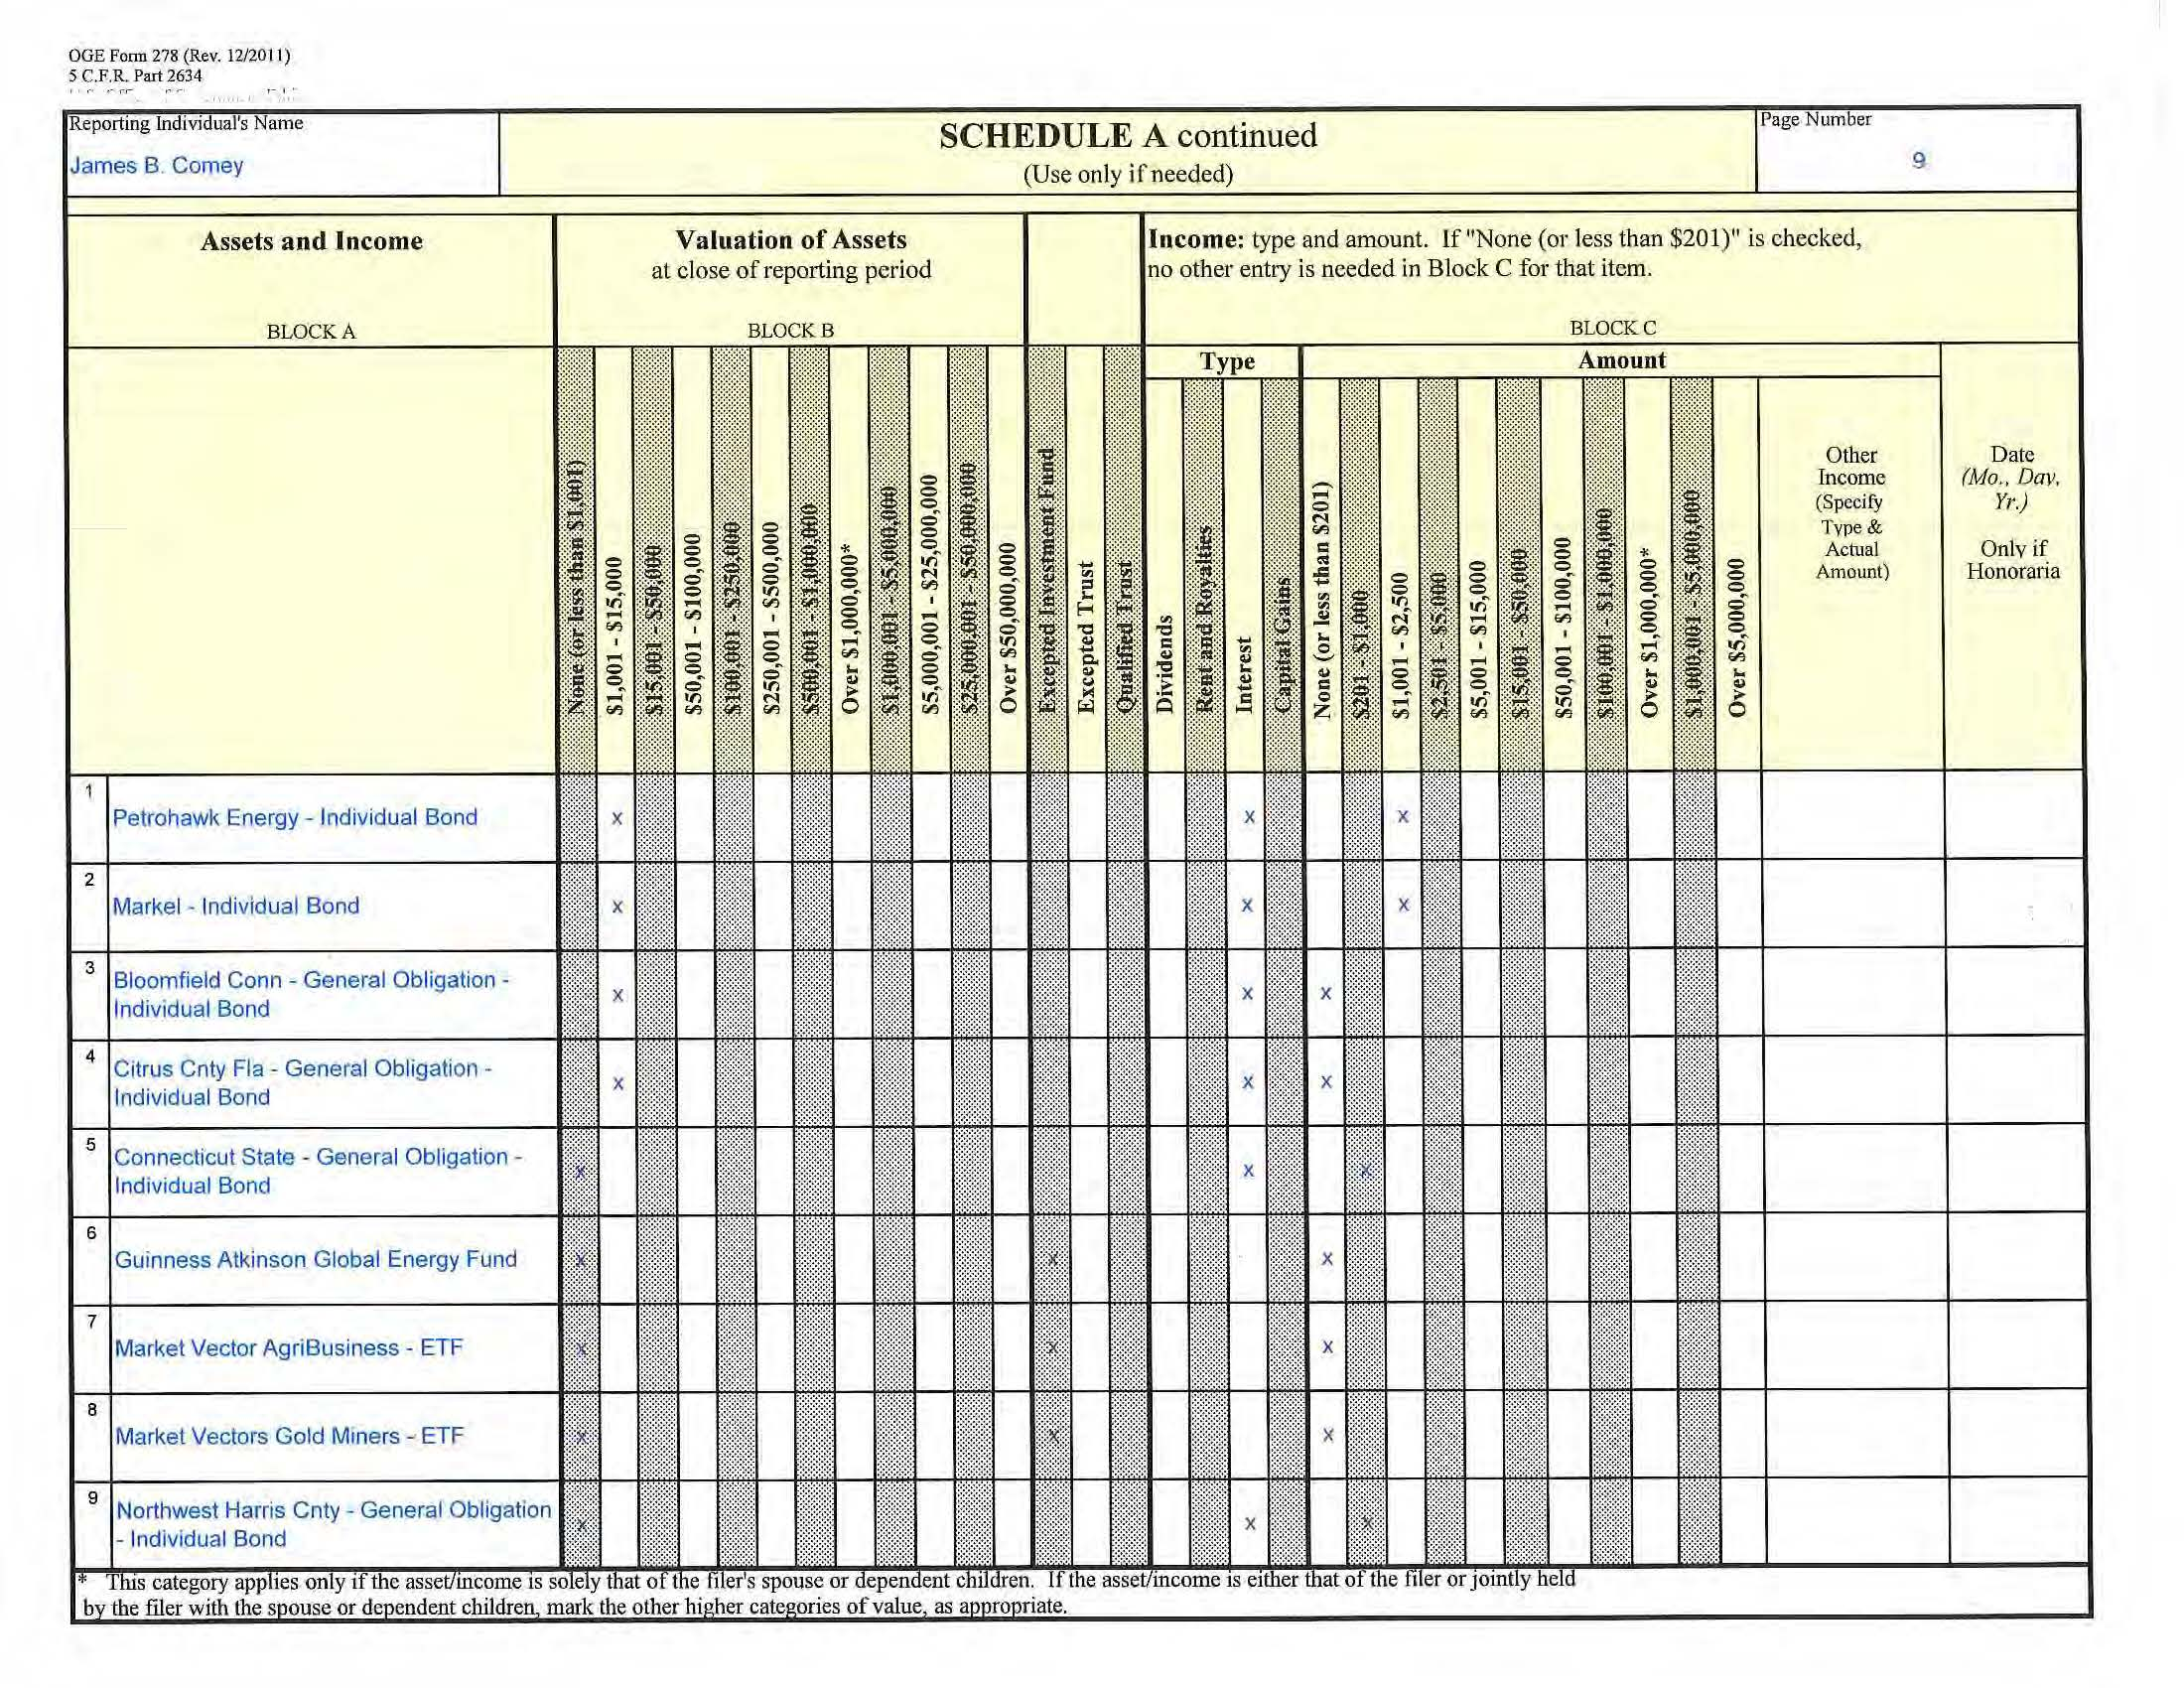 James-B-Comey-2013Form278NewEntrant_Page_09.jpg